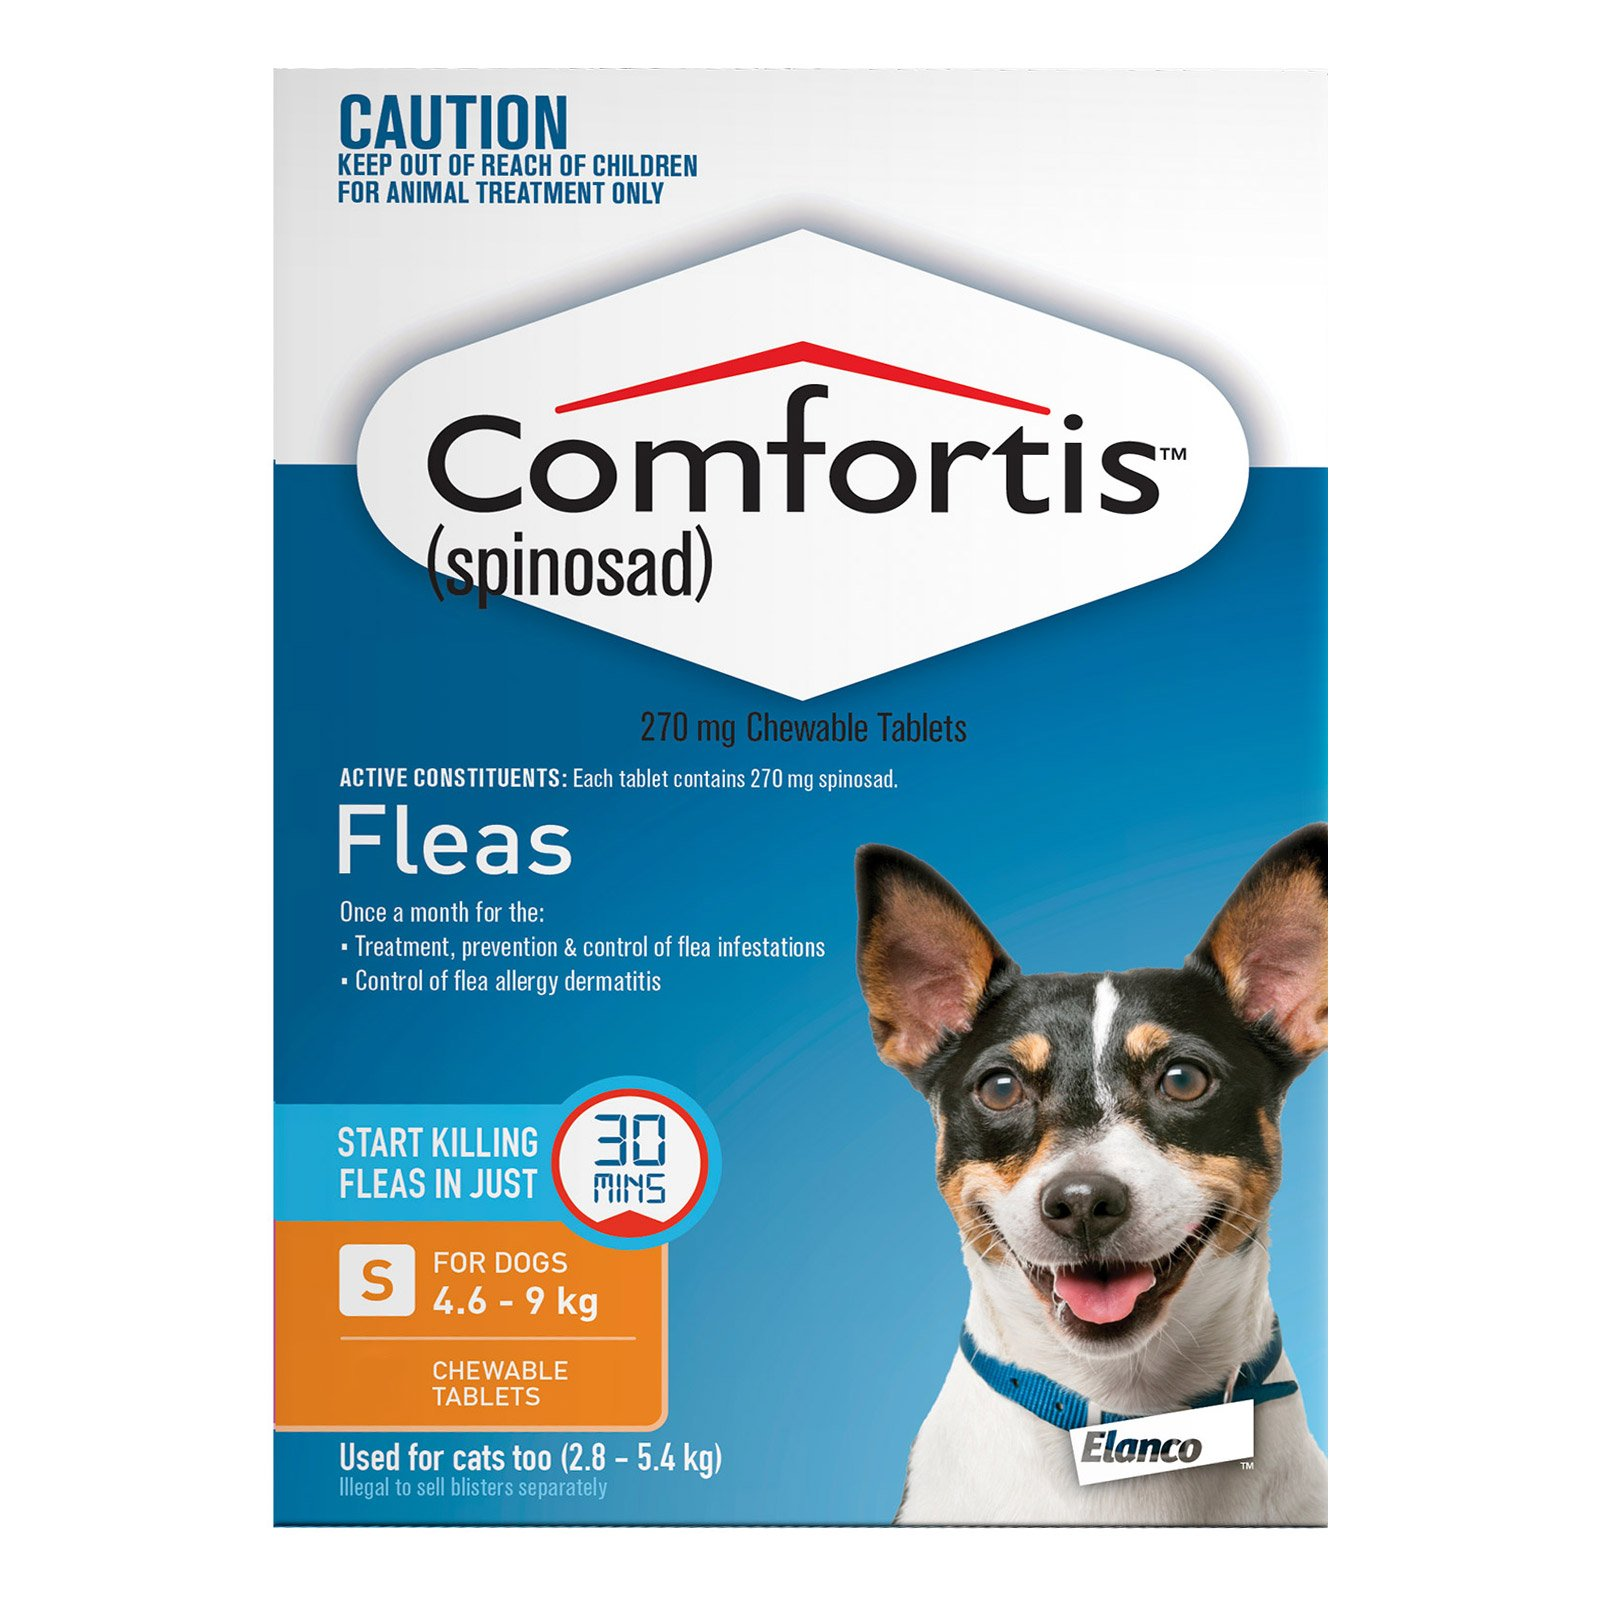 comfortis-chewable-tablets-for-dogs-4-6-9-kg-orange-2.jpg